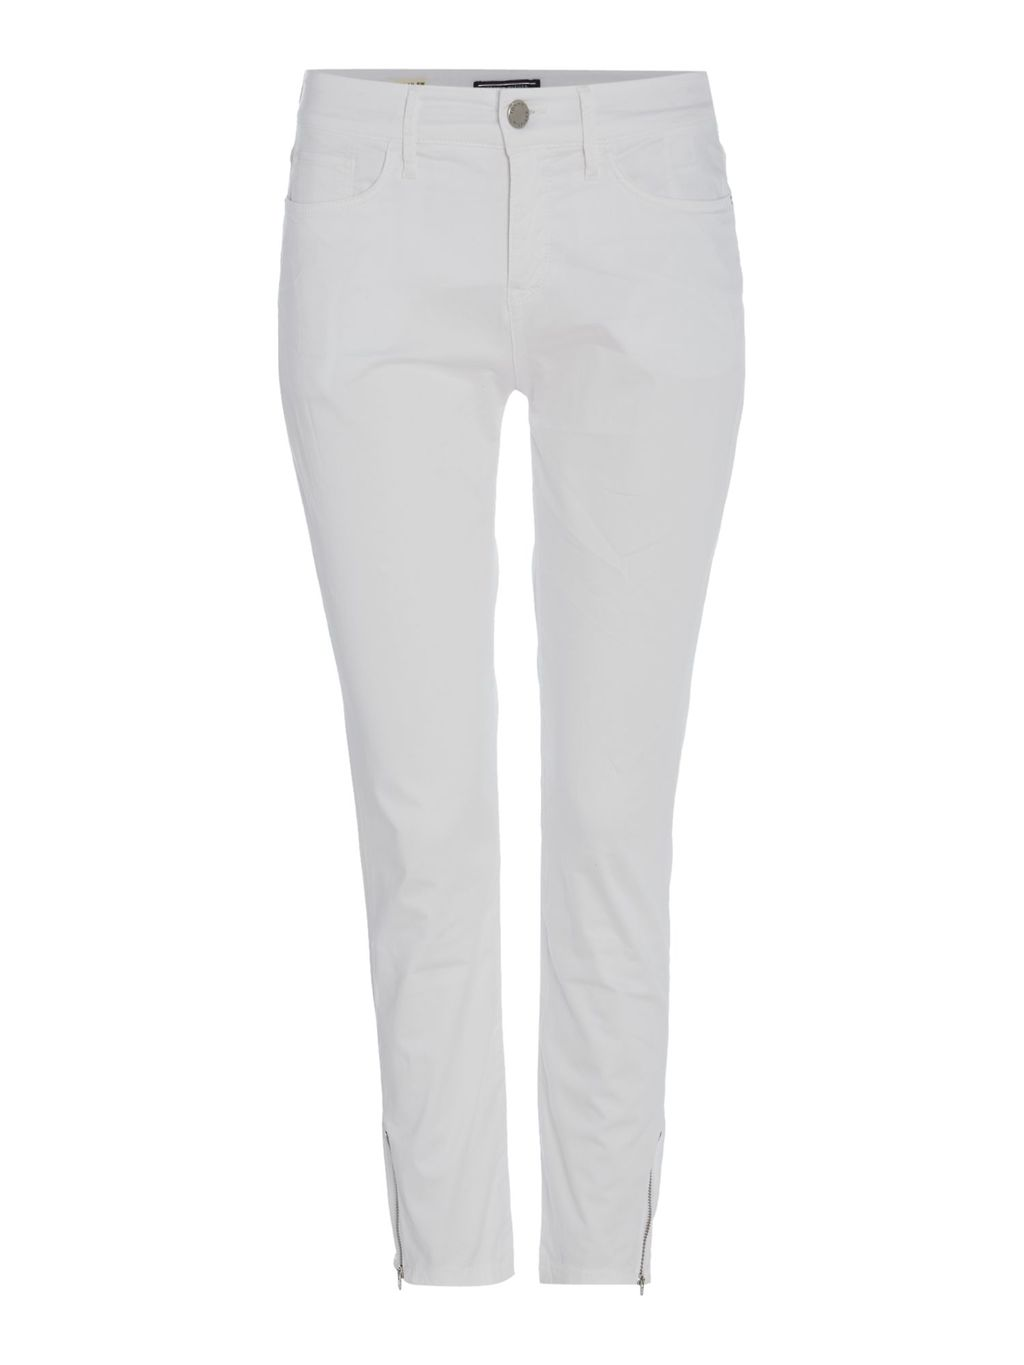 Judy Milan Pants, White - pattern: plain; waist: mid/regular rise; predominant colour: white; occasions: casual; length: ankle length; fibres: cotton - stretch; texture group: cotton feel fabrics; fit: slim leg; pattern type: fabric; style: standard; season: s/s 2016; wardrobe: basic